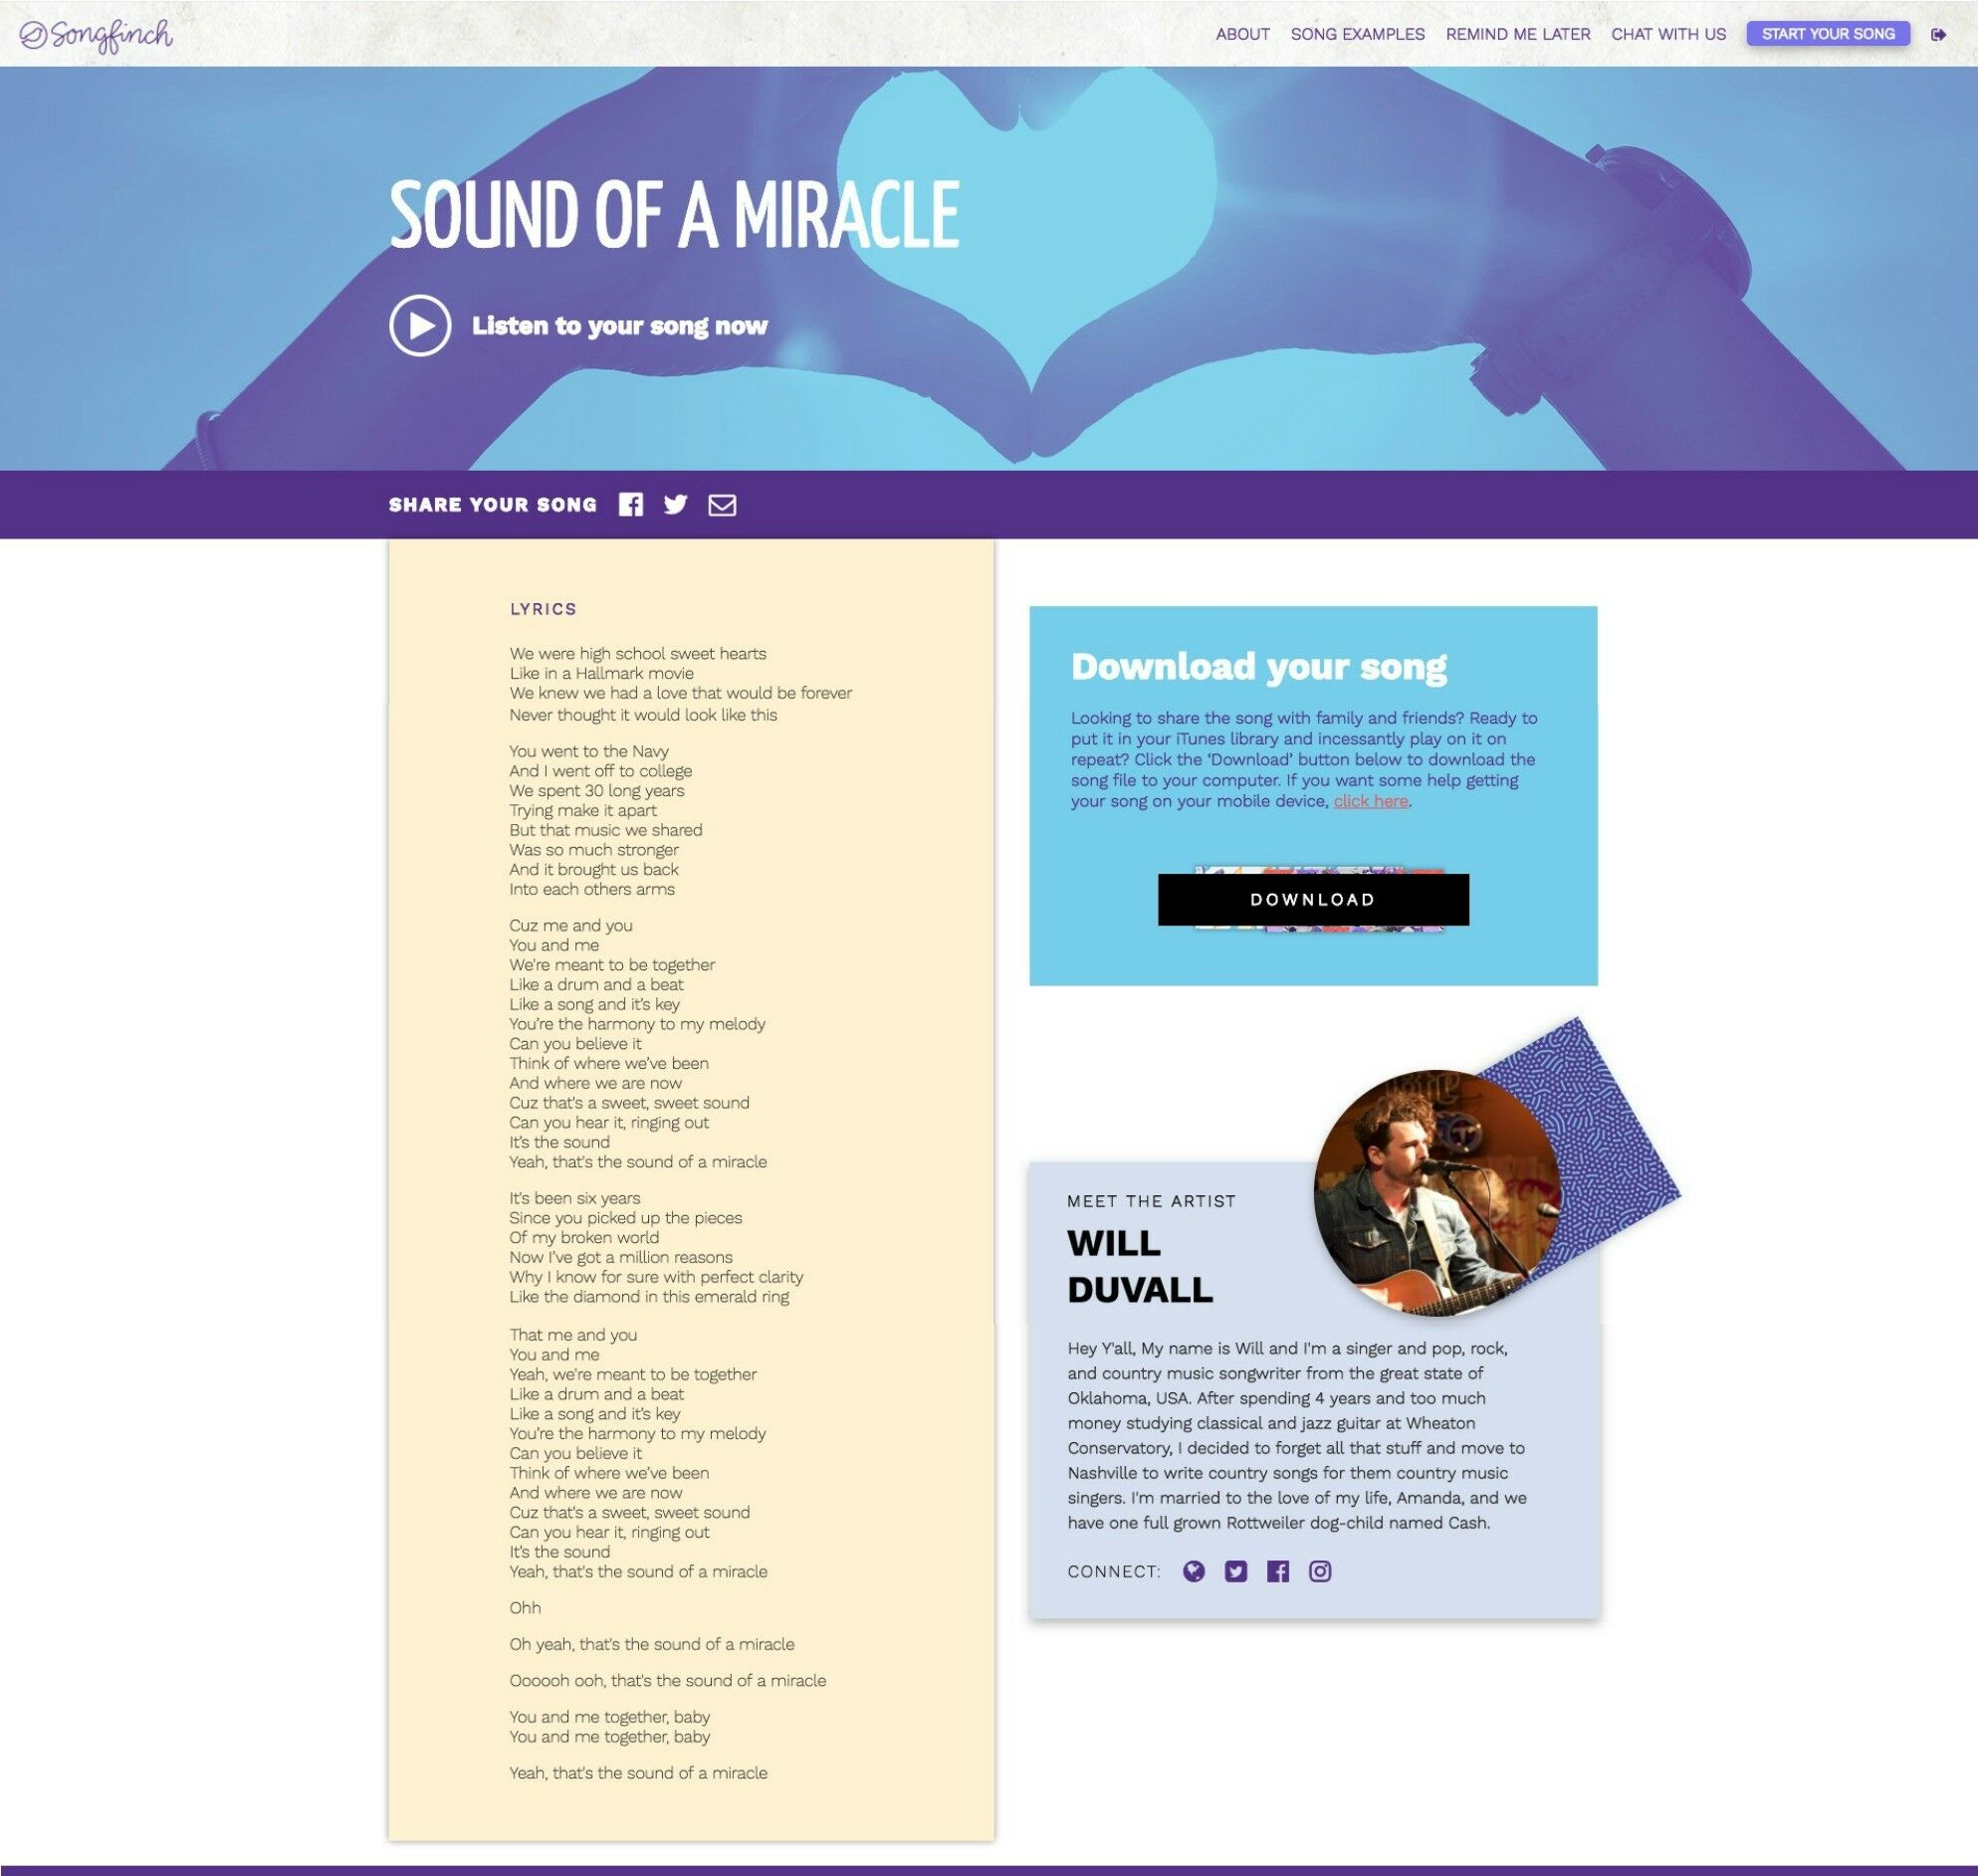 Songfinch Personalized Song Review {Sound of a Miracle} | The Good Hearted Woman